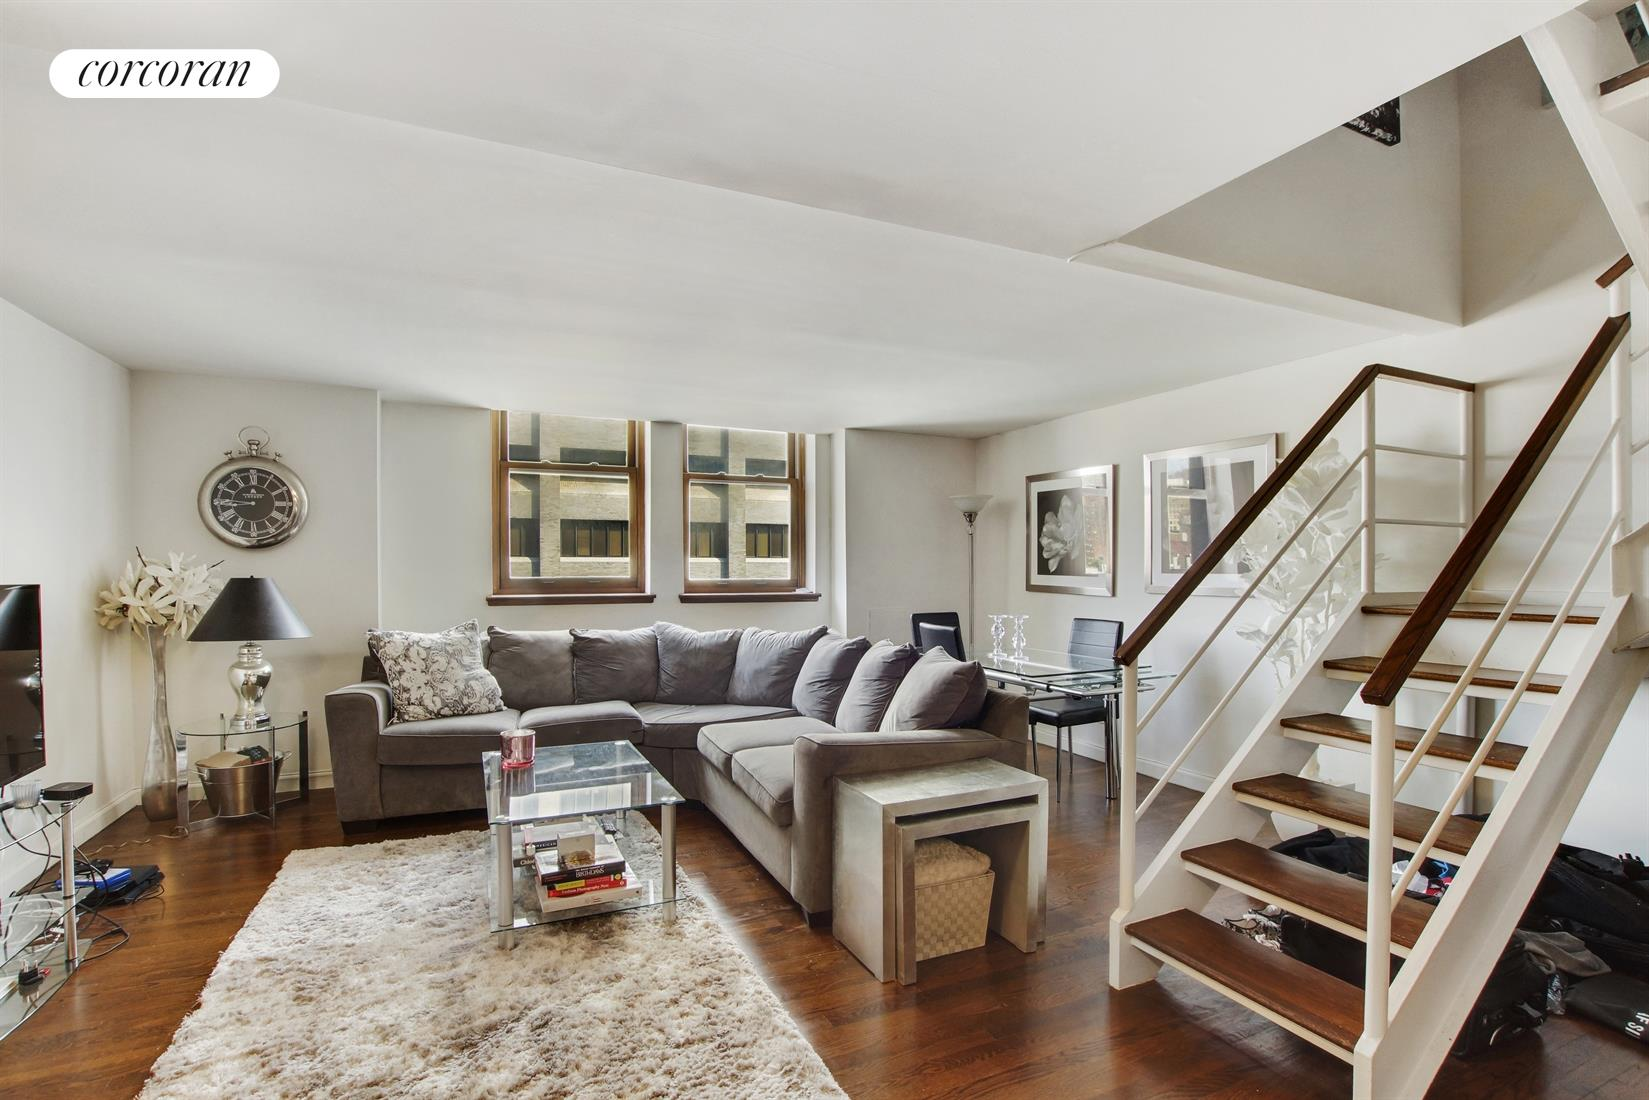 305 Second Avenue, 526, Living Room